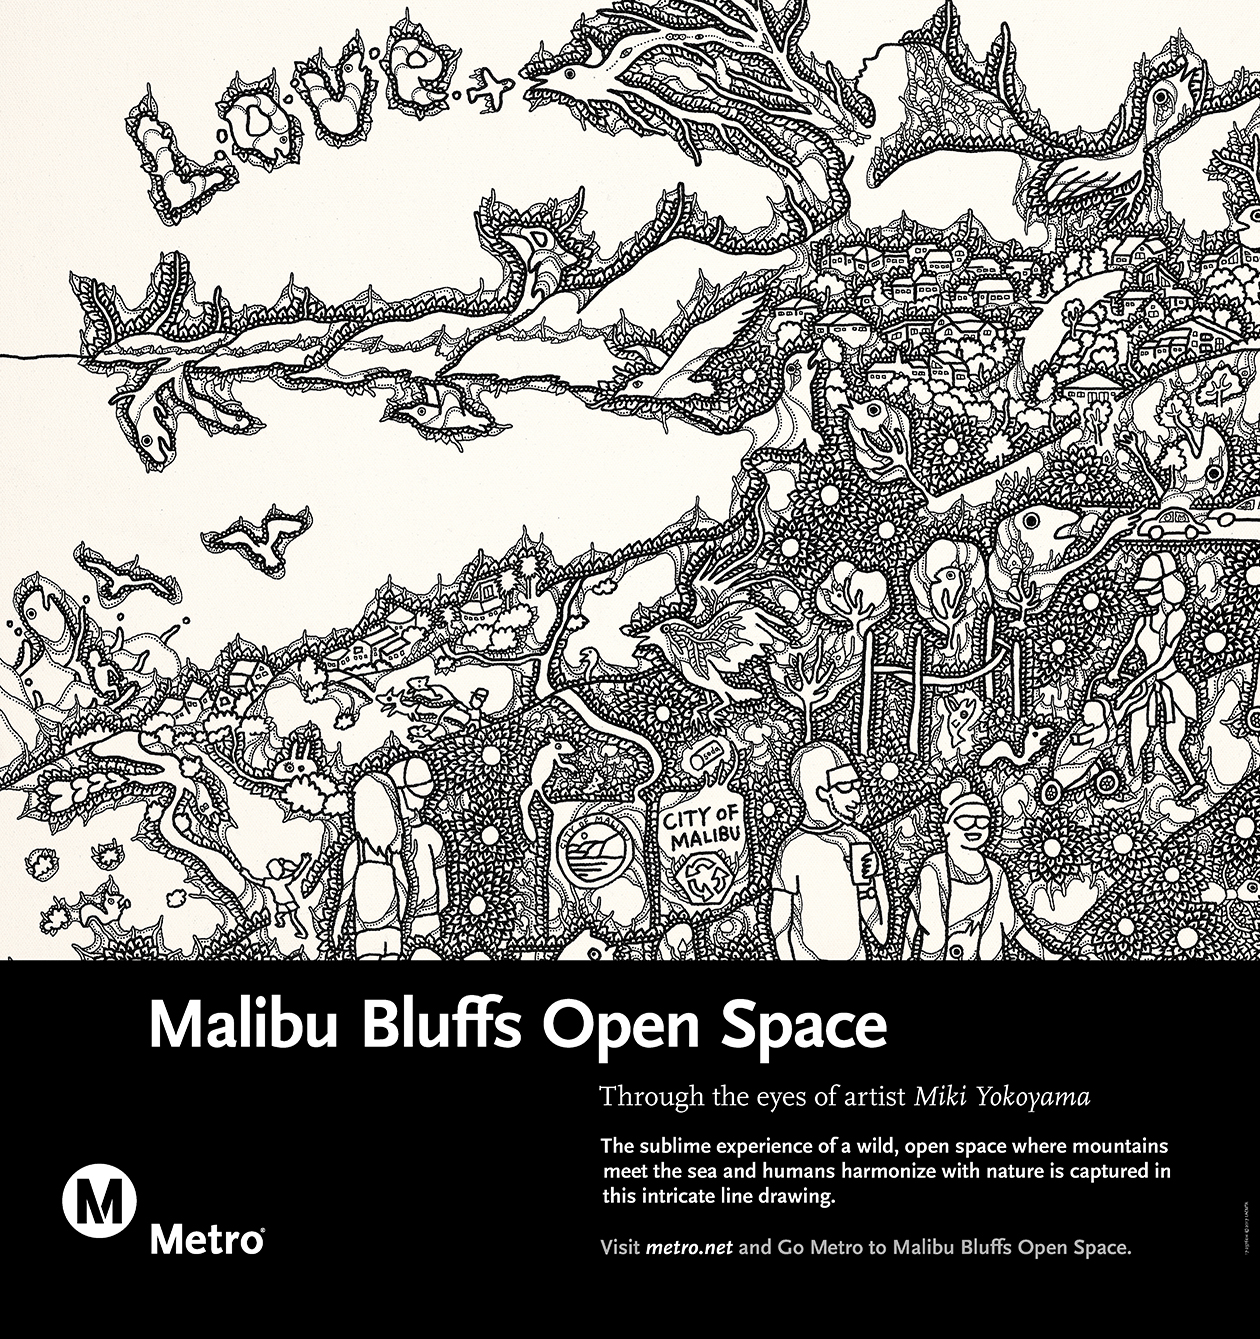 <p>Malibu Bluffs Open Space Rail Poster</p>